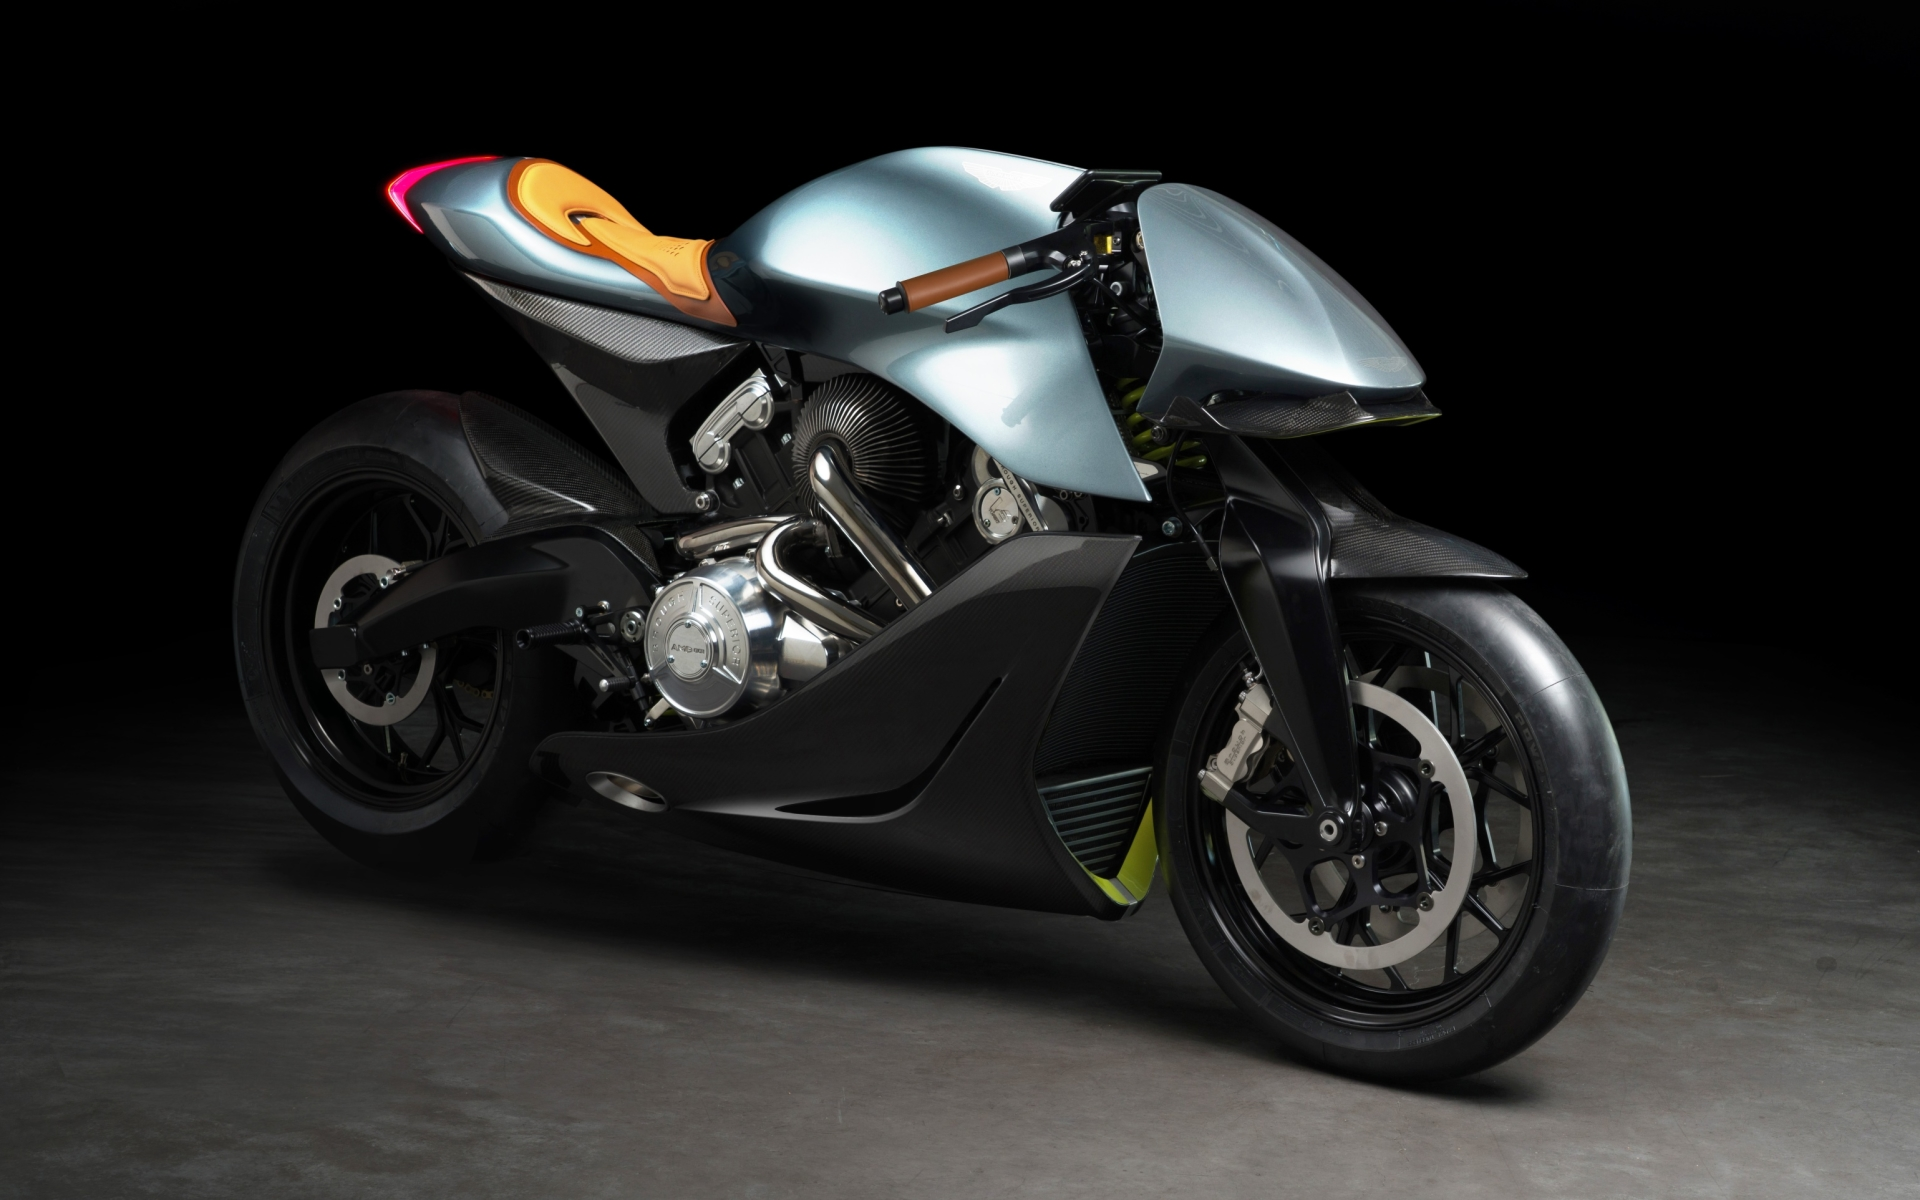 Aston Martin unveils its first-ever motorcycle AMB 001